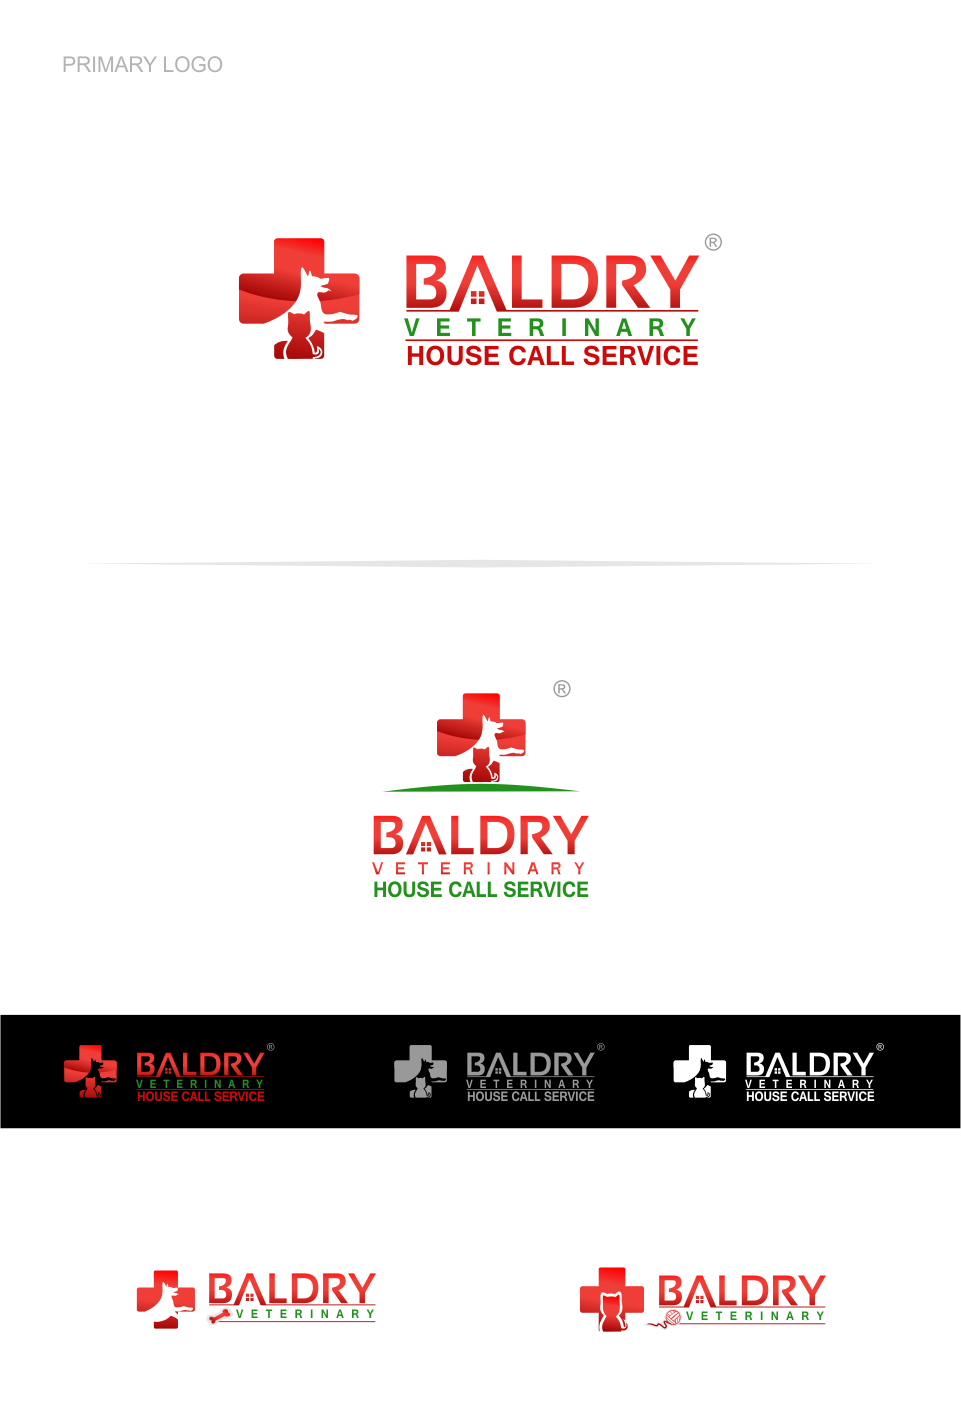 Logo Design by Mitchnick Sunardi - Entry No. 70 in the Logo Design Contest Captivating Logo Design for Baldry Veterinary House Call Service.